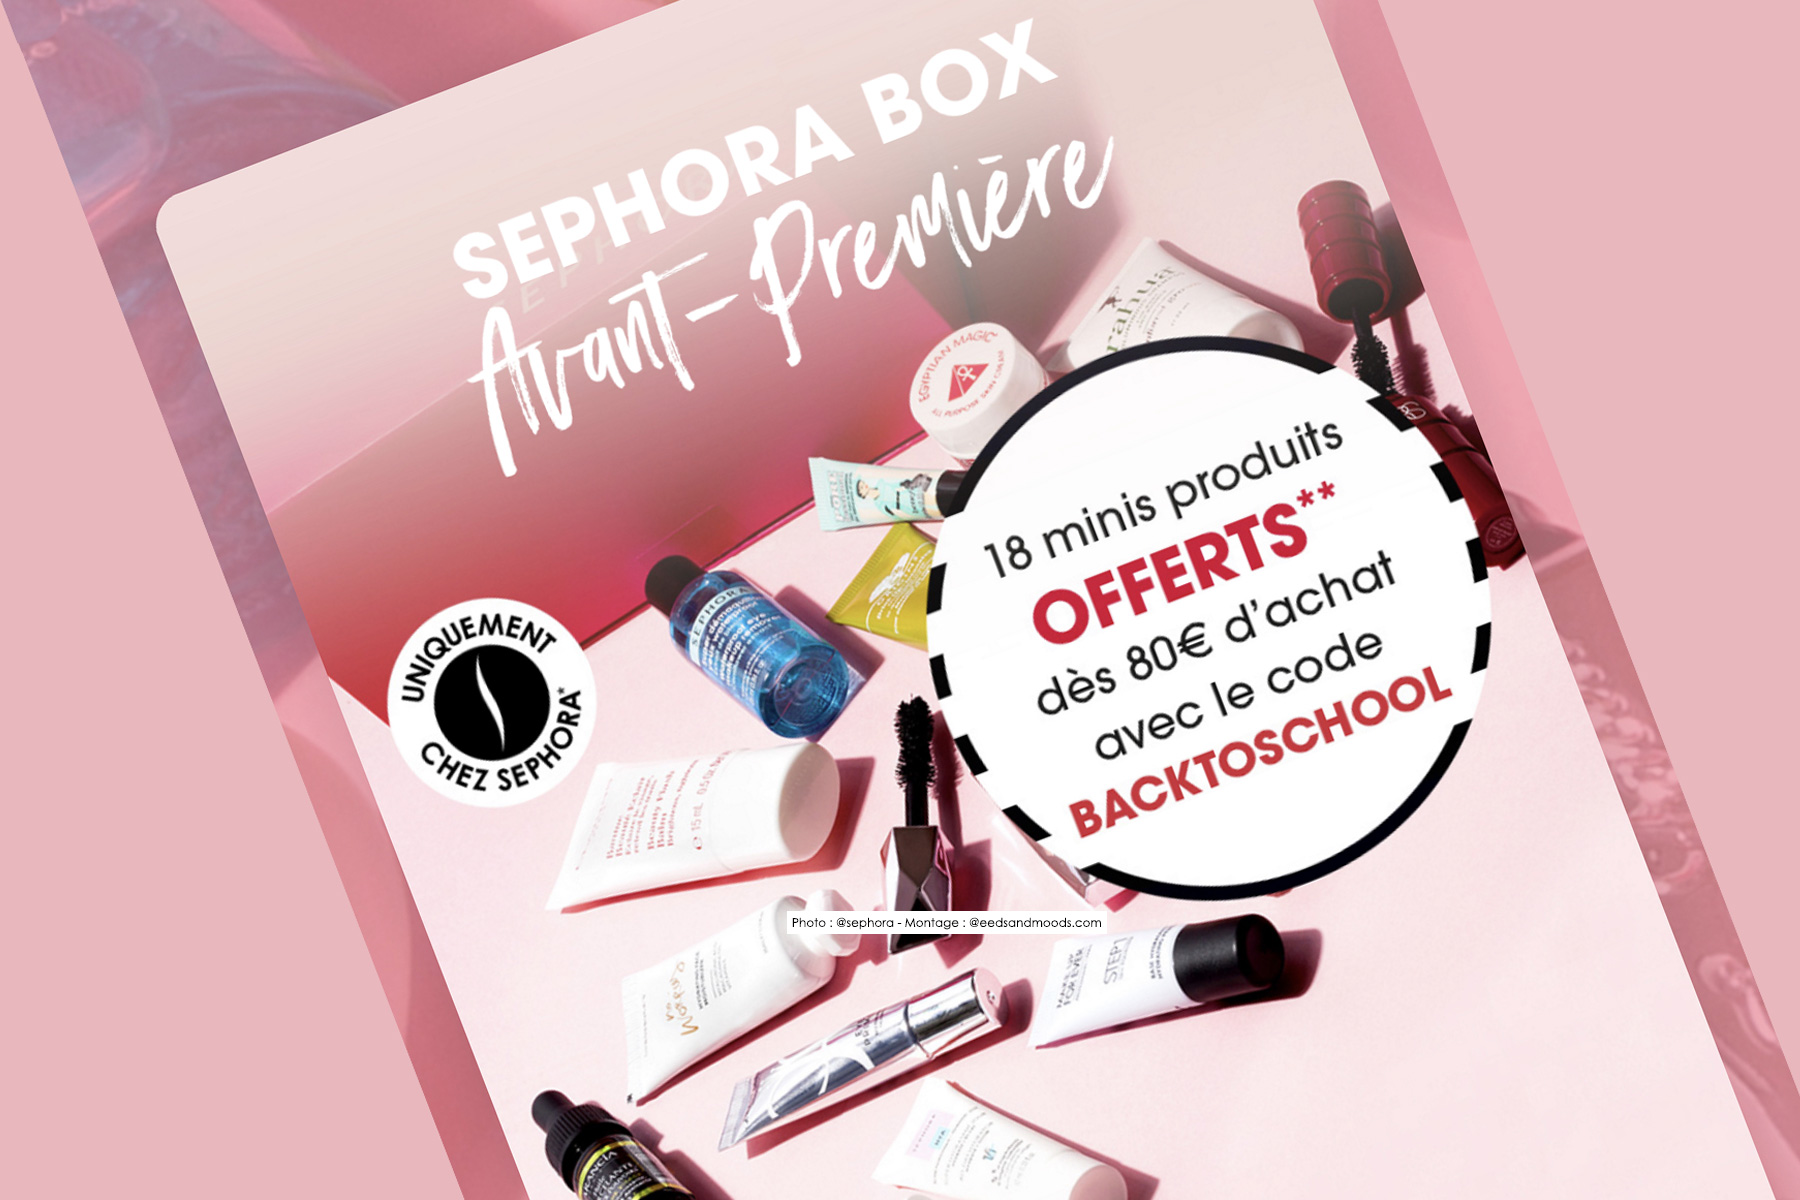 sephora-box-septembre-2019